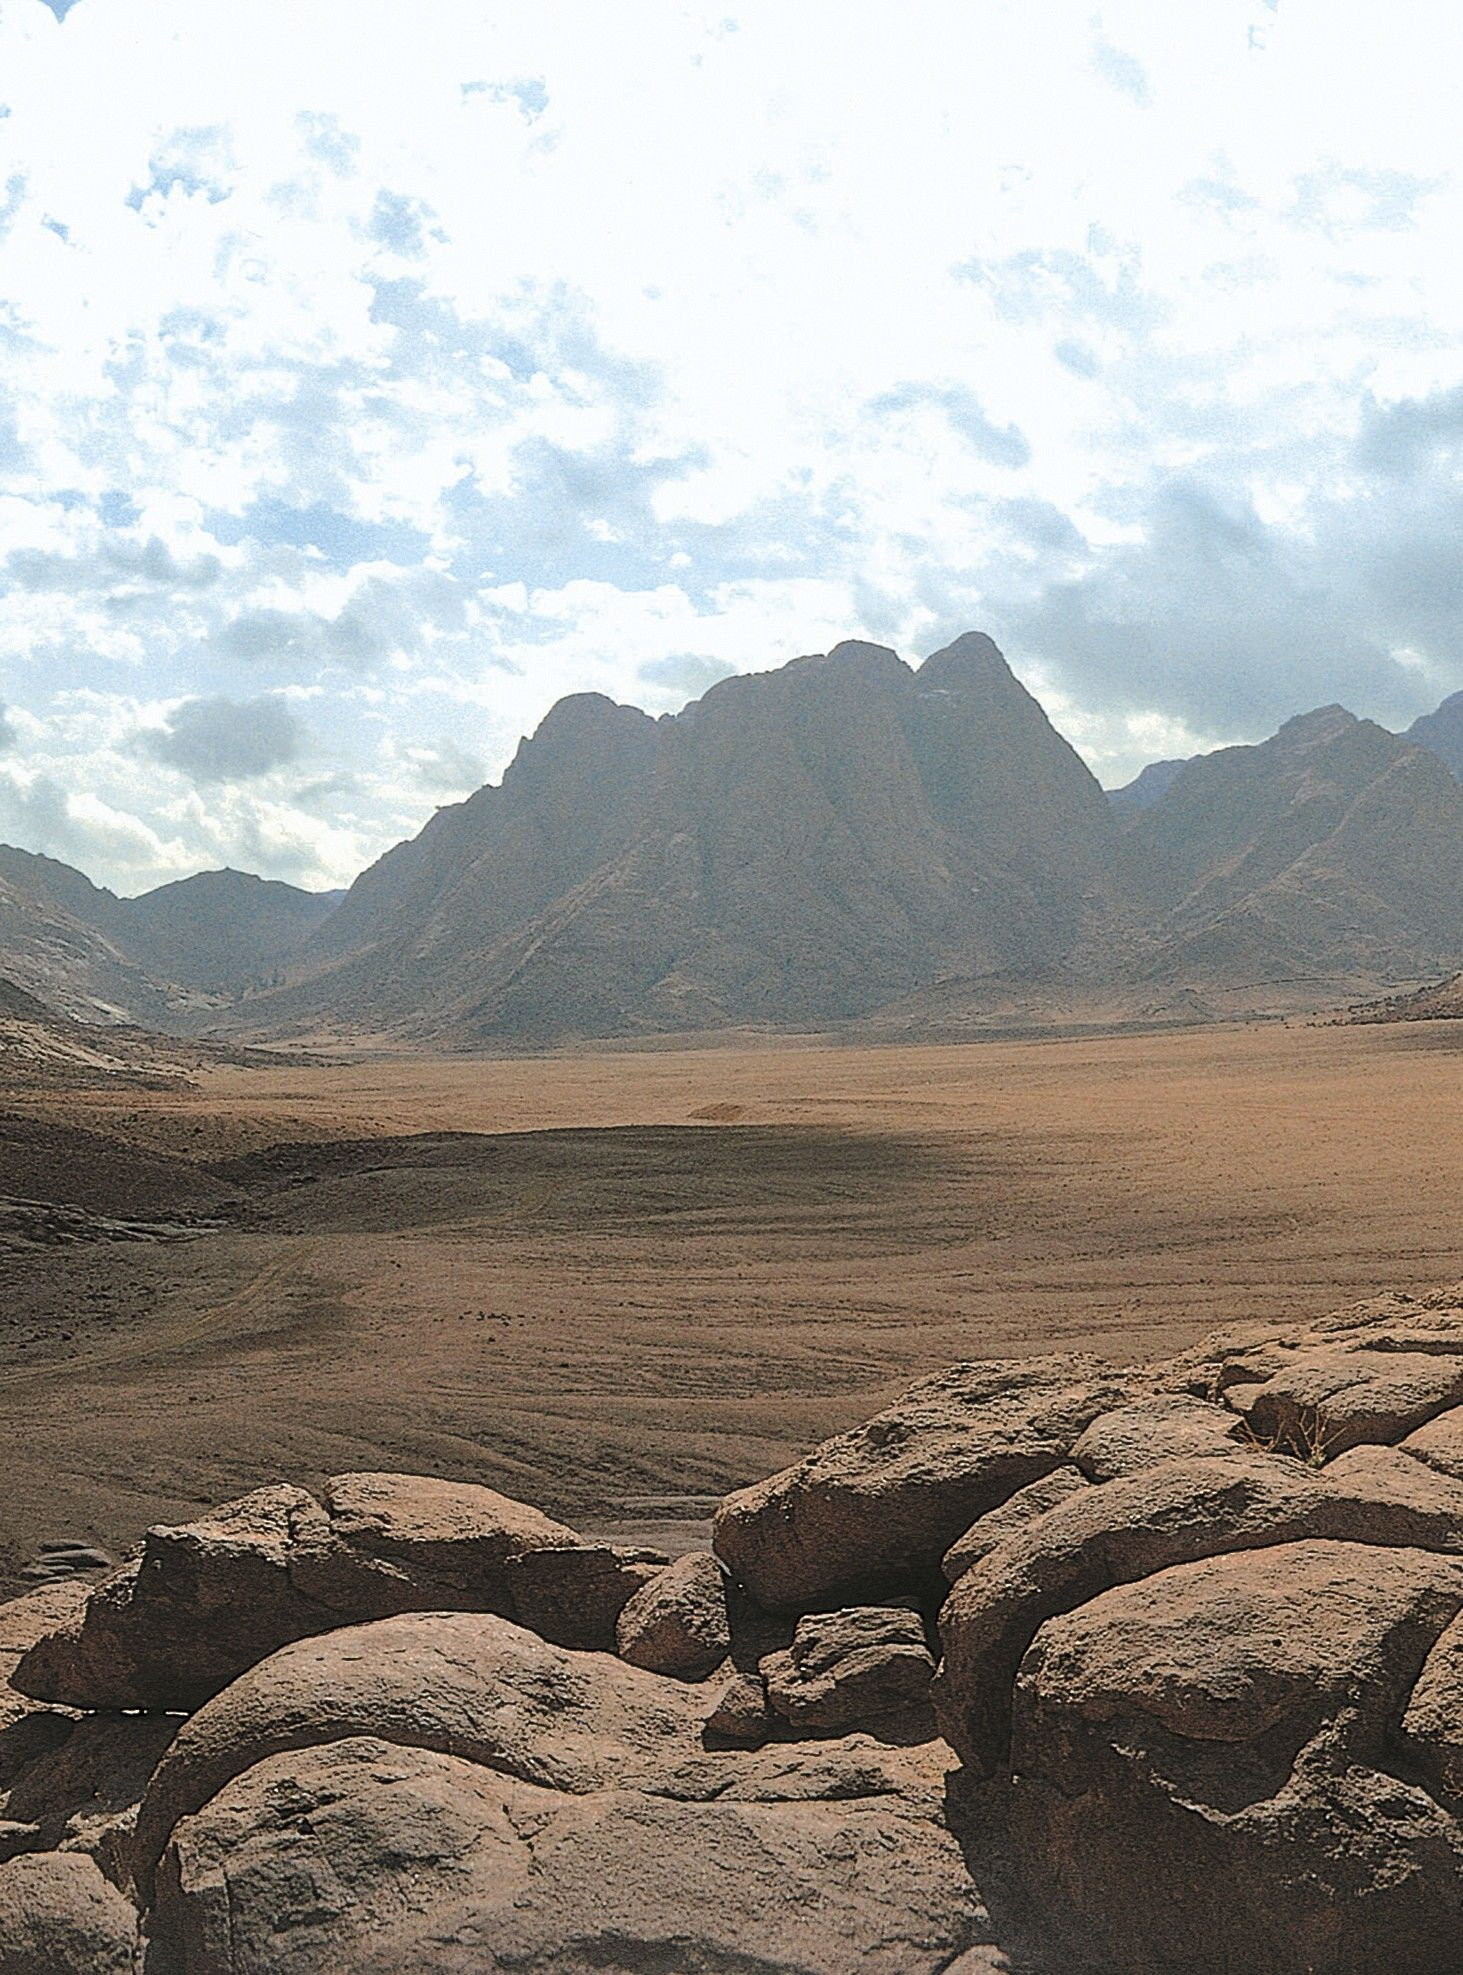 The plain of Rahah with Mount Sinai in the background.